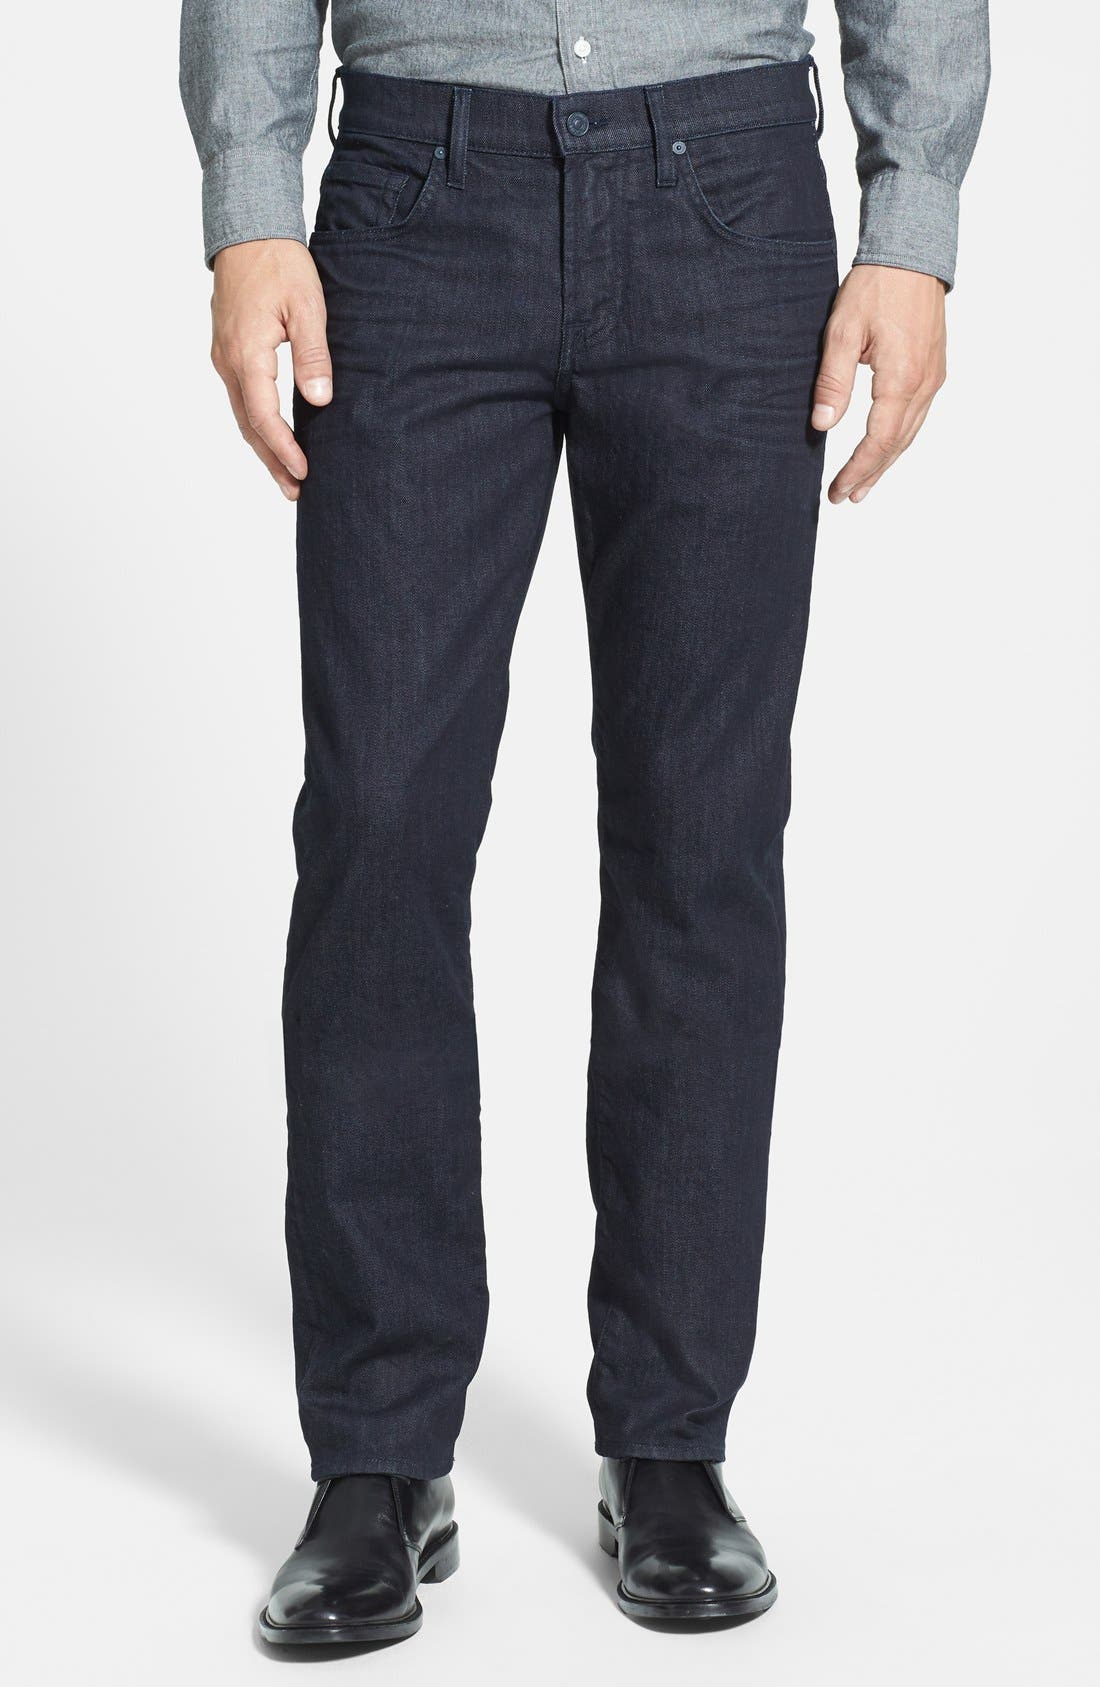 The Straight - Luxe Performance Slim Straight Leg Jeans,                             Main thumbnail 1, color,                             DEEP WELL